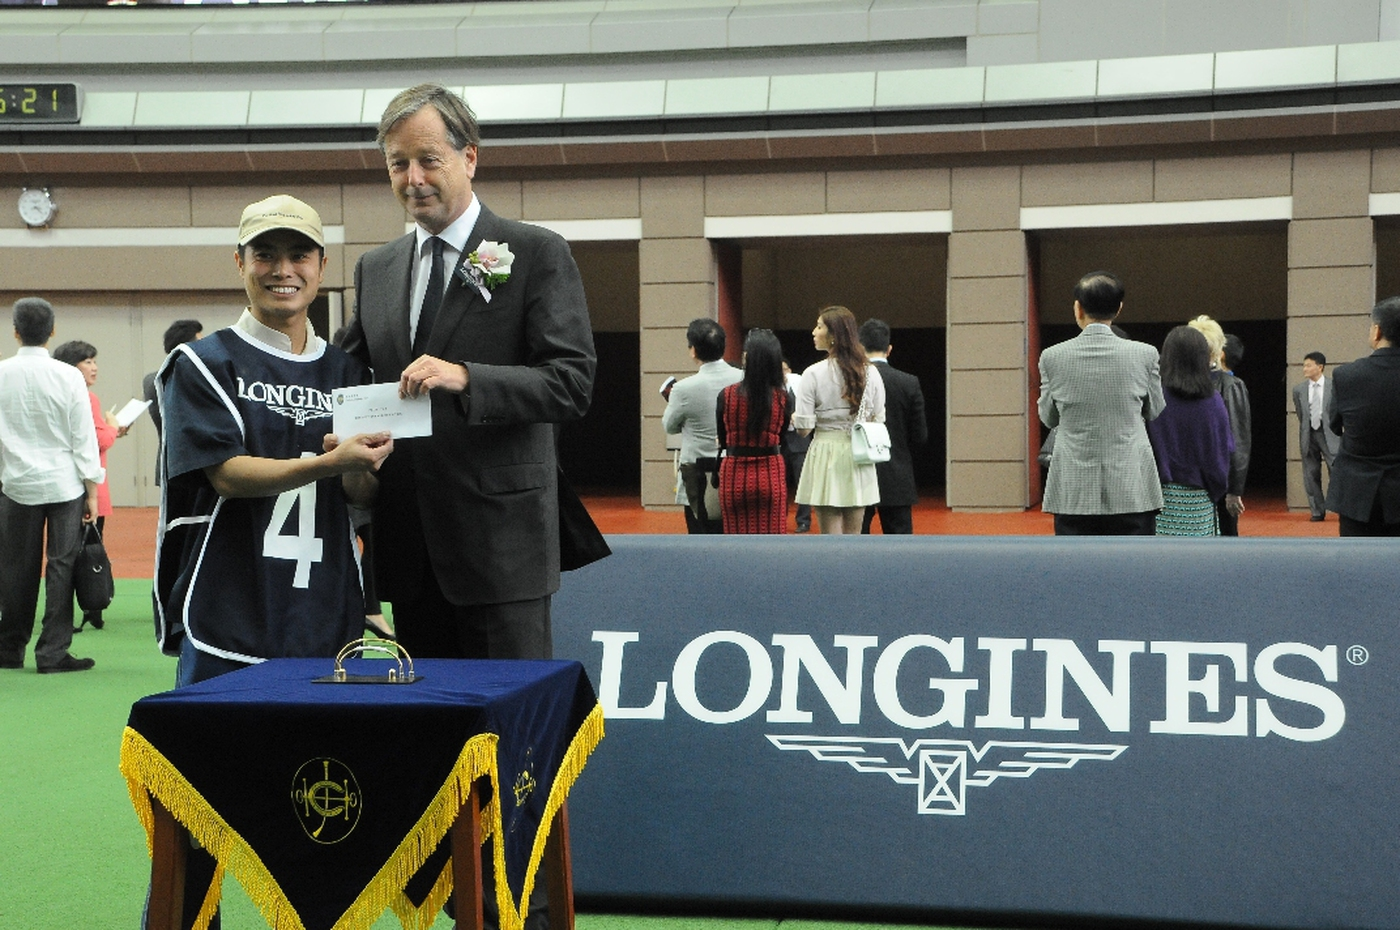 Longines Flat Racing Event: The first ever Longines Jockey Club Cup showcased Longines' passion for equestrian sports 7